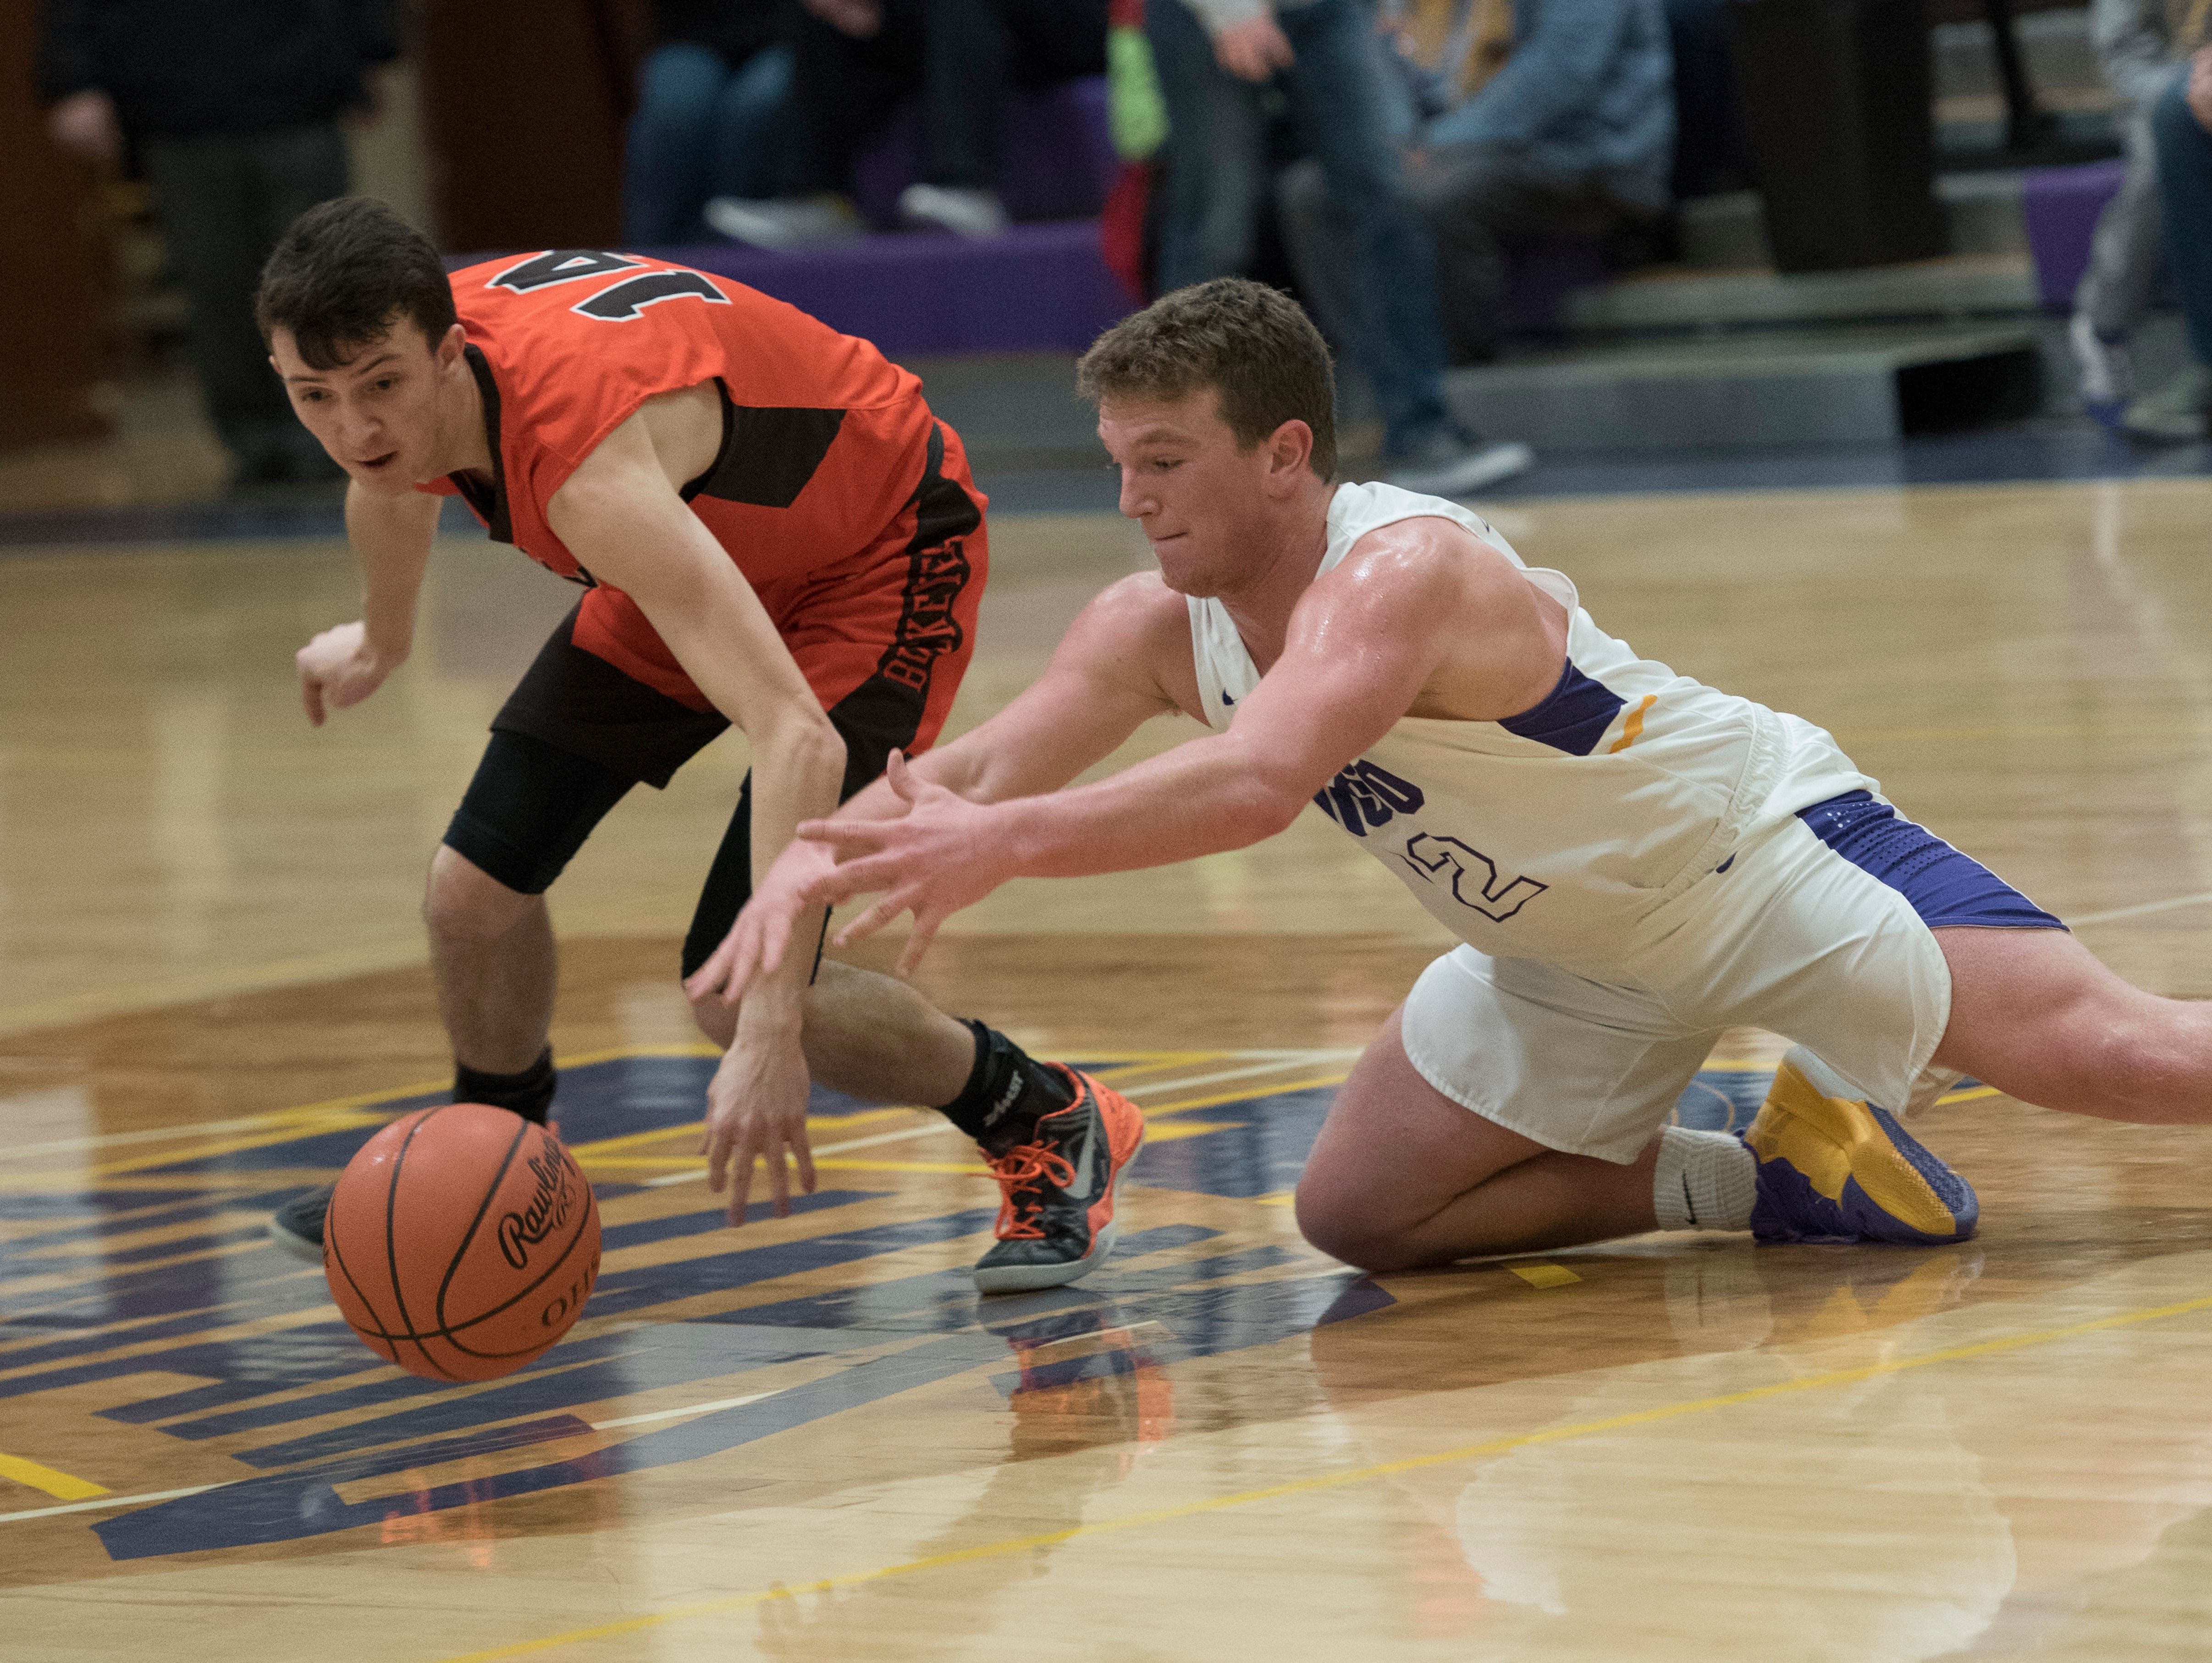 Unioto defeated Nelsonville-York 66-53 Wednesday night at Unioto High School in Chillicothe, Ohio.